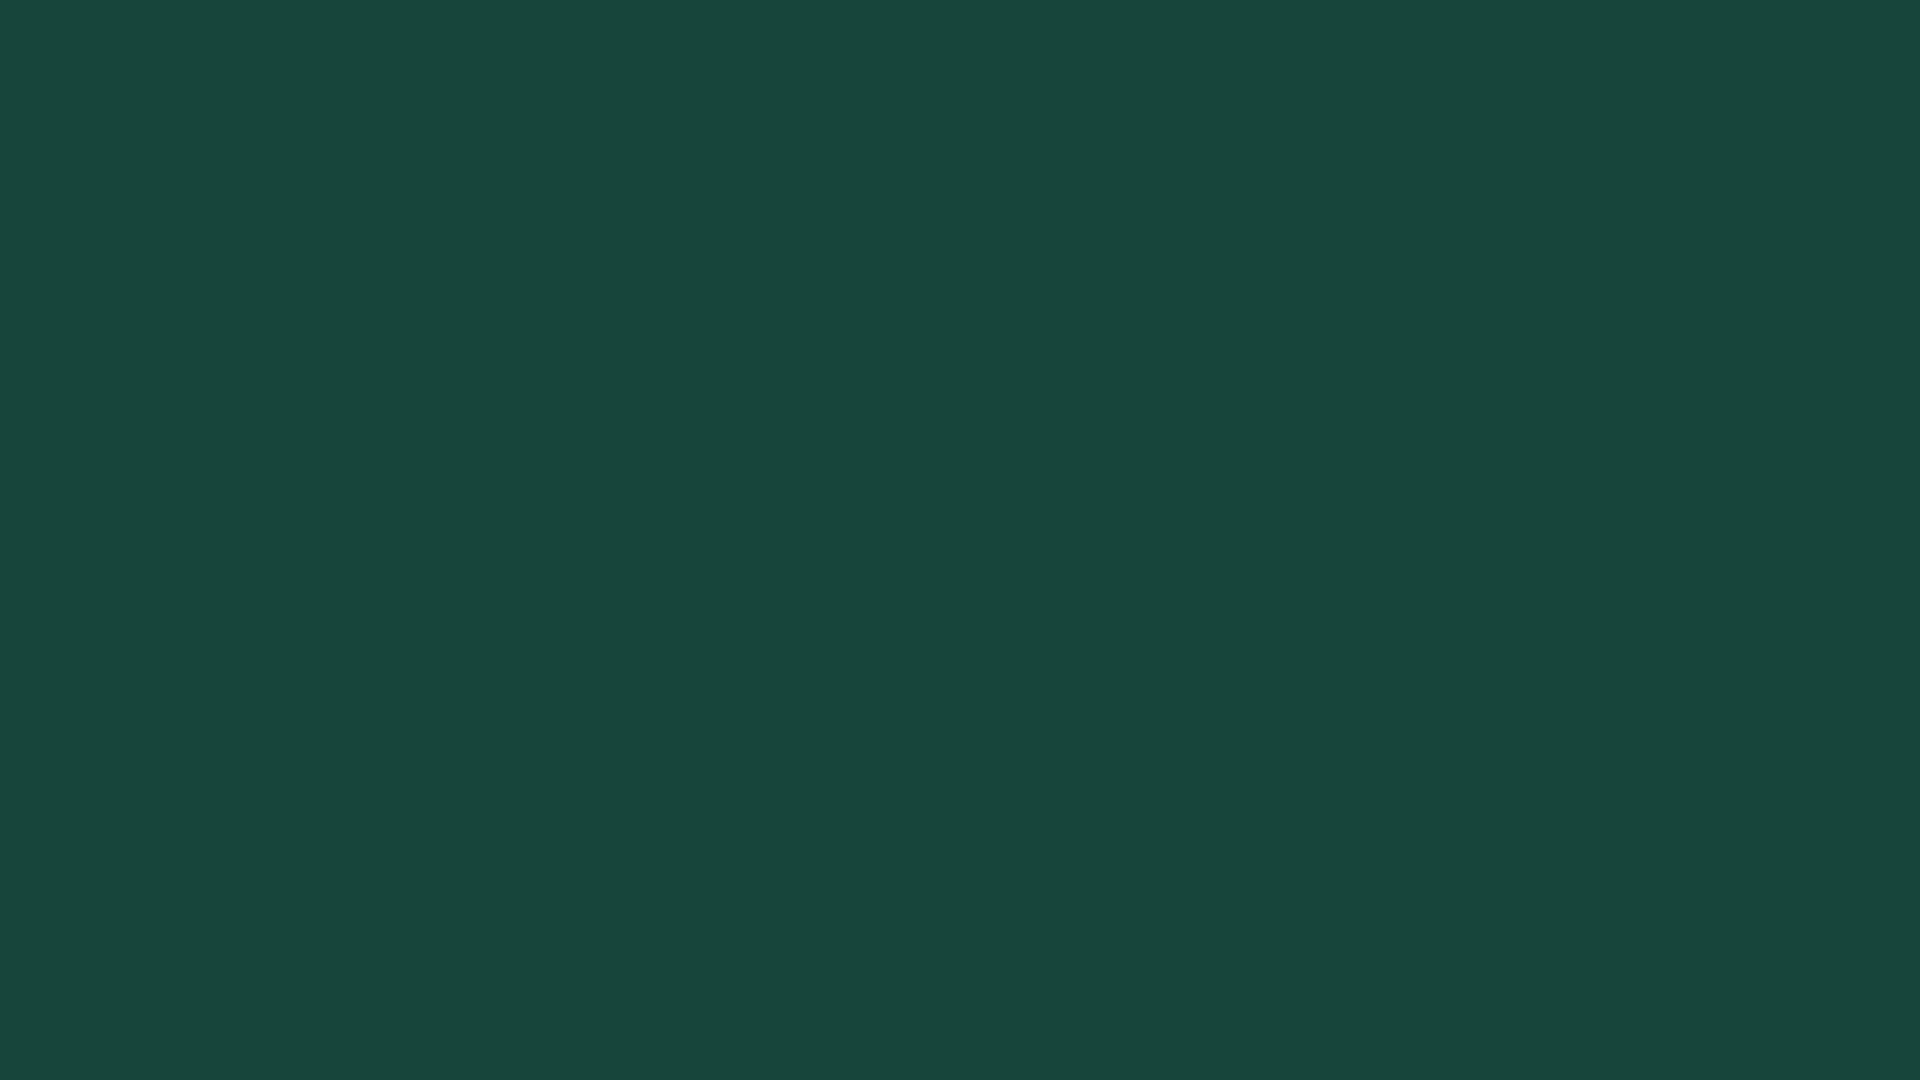 1920x1080 MSU Green Solid Color Background